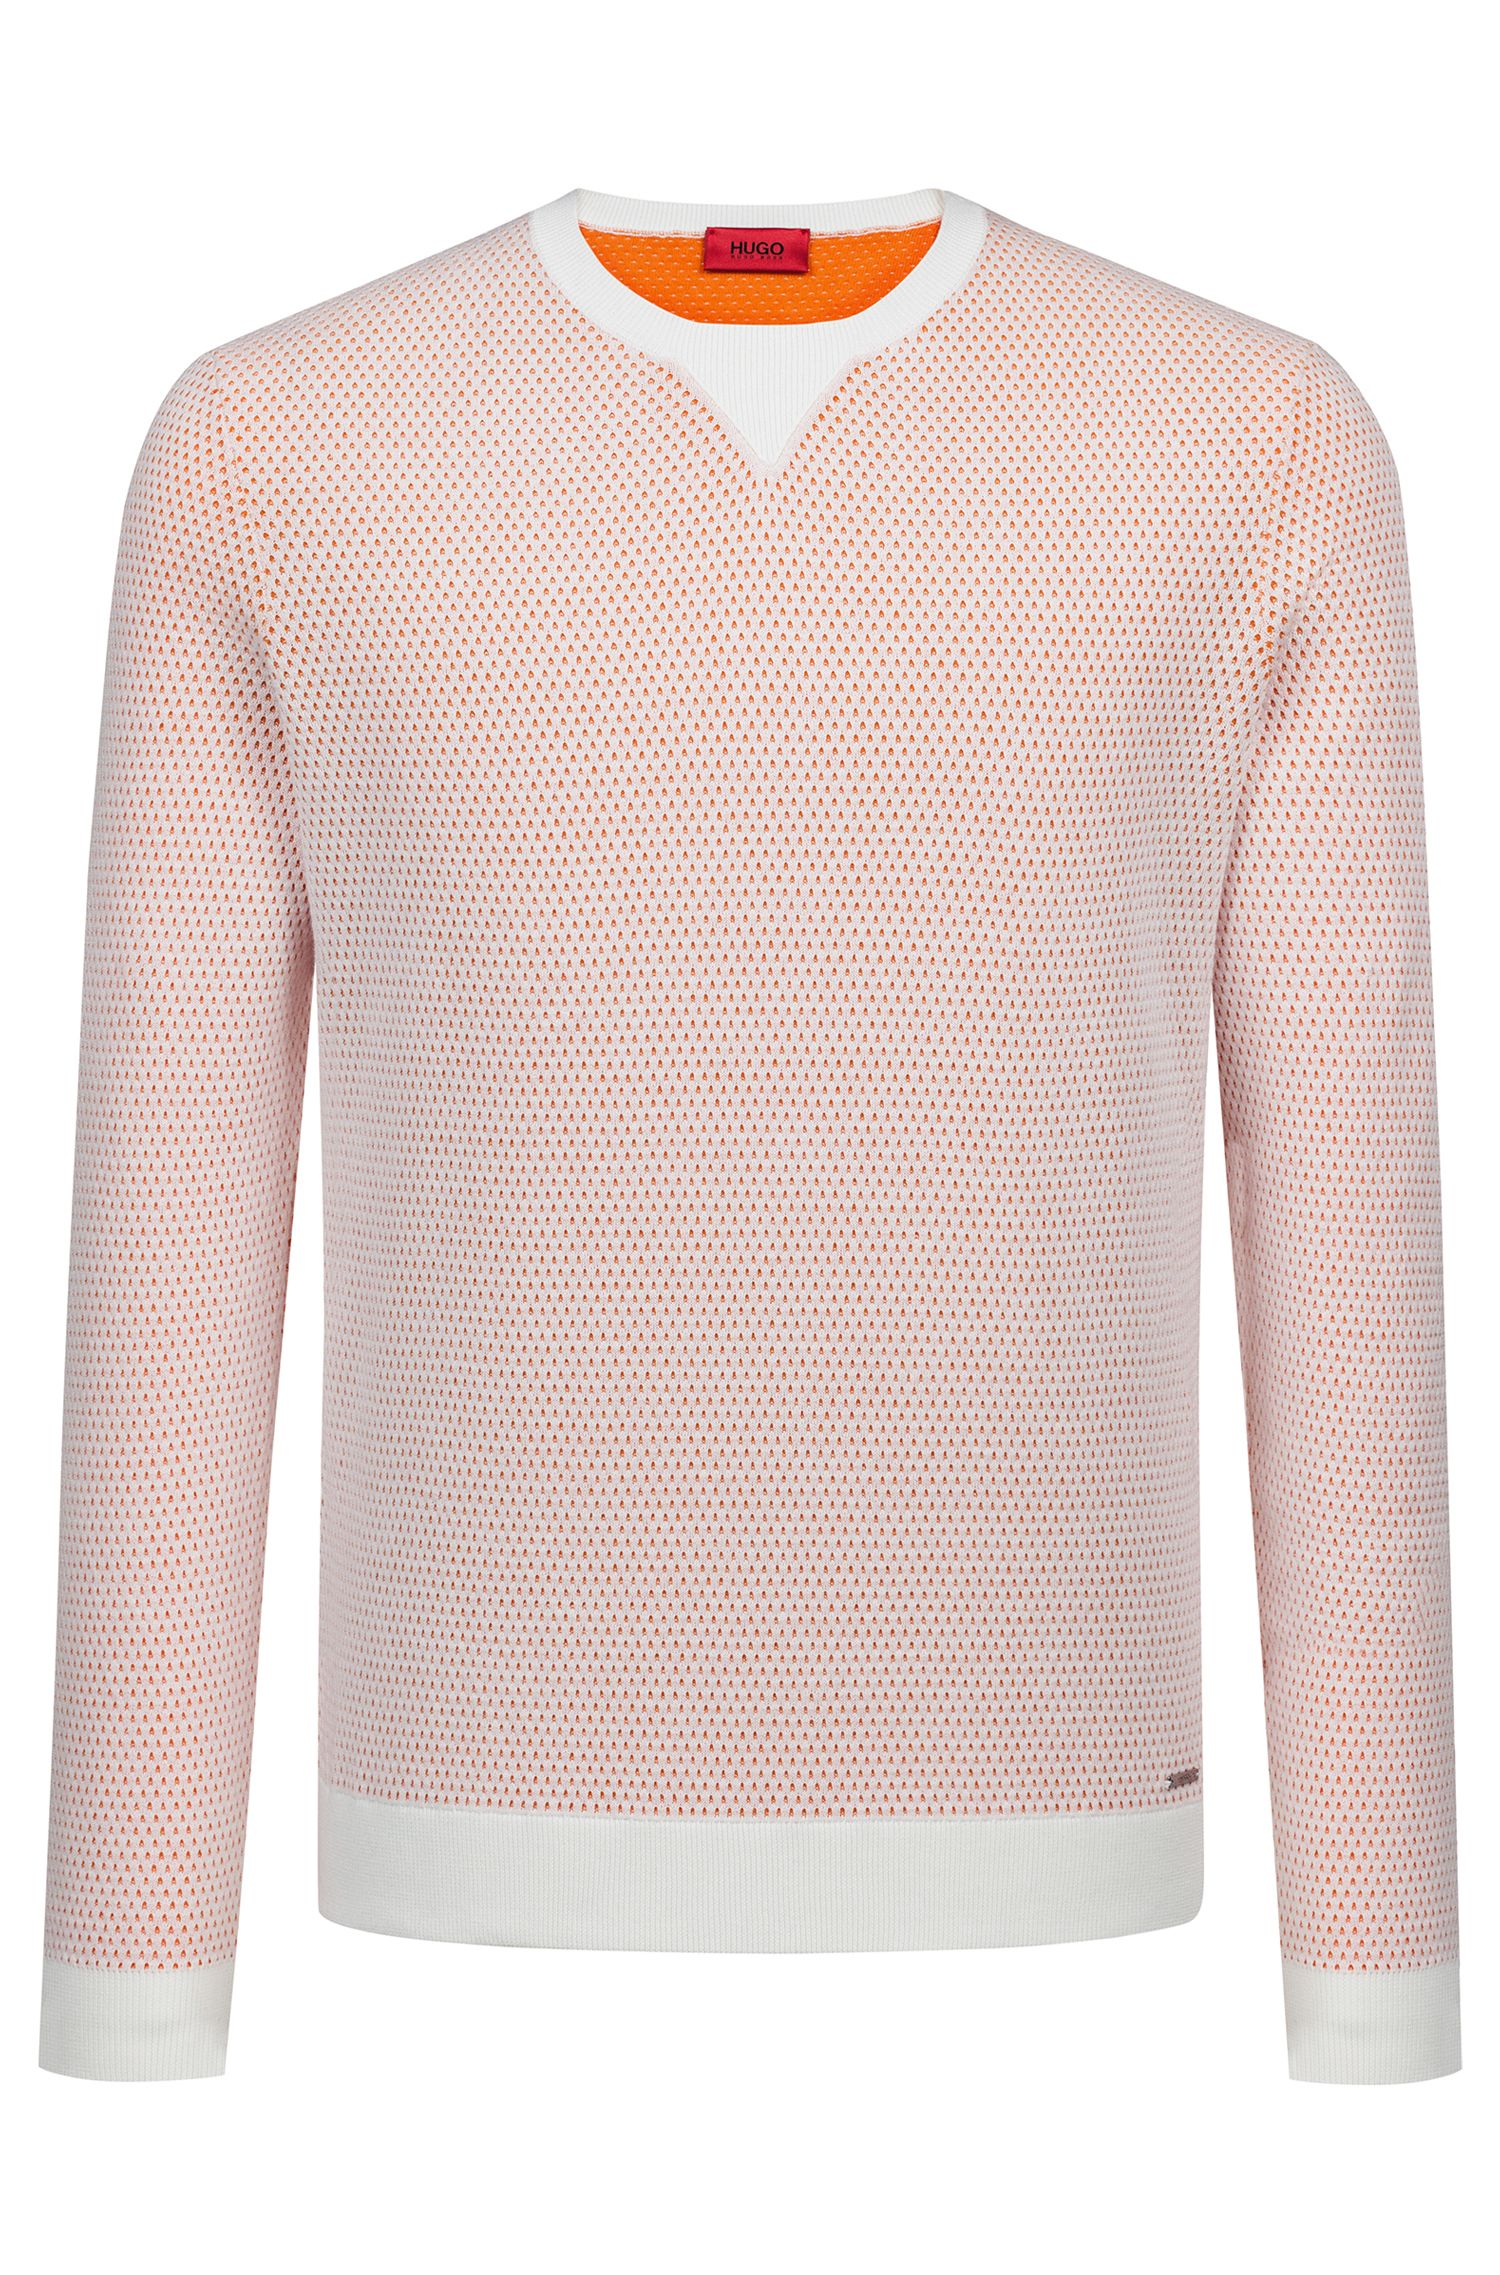 Crew-neck sweater in two-colour knitted cotton piqué , Natural